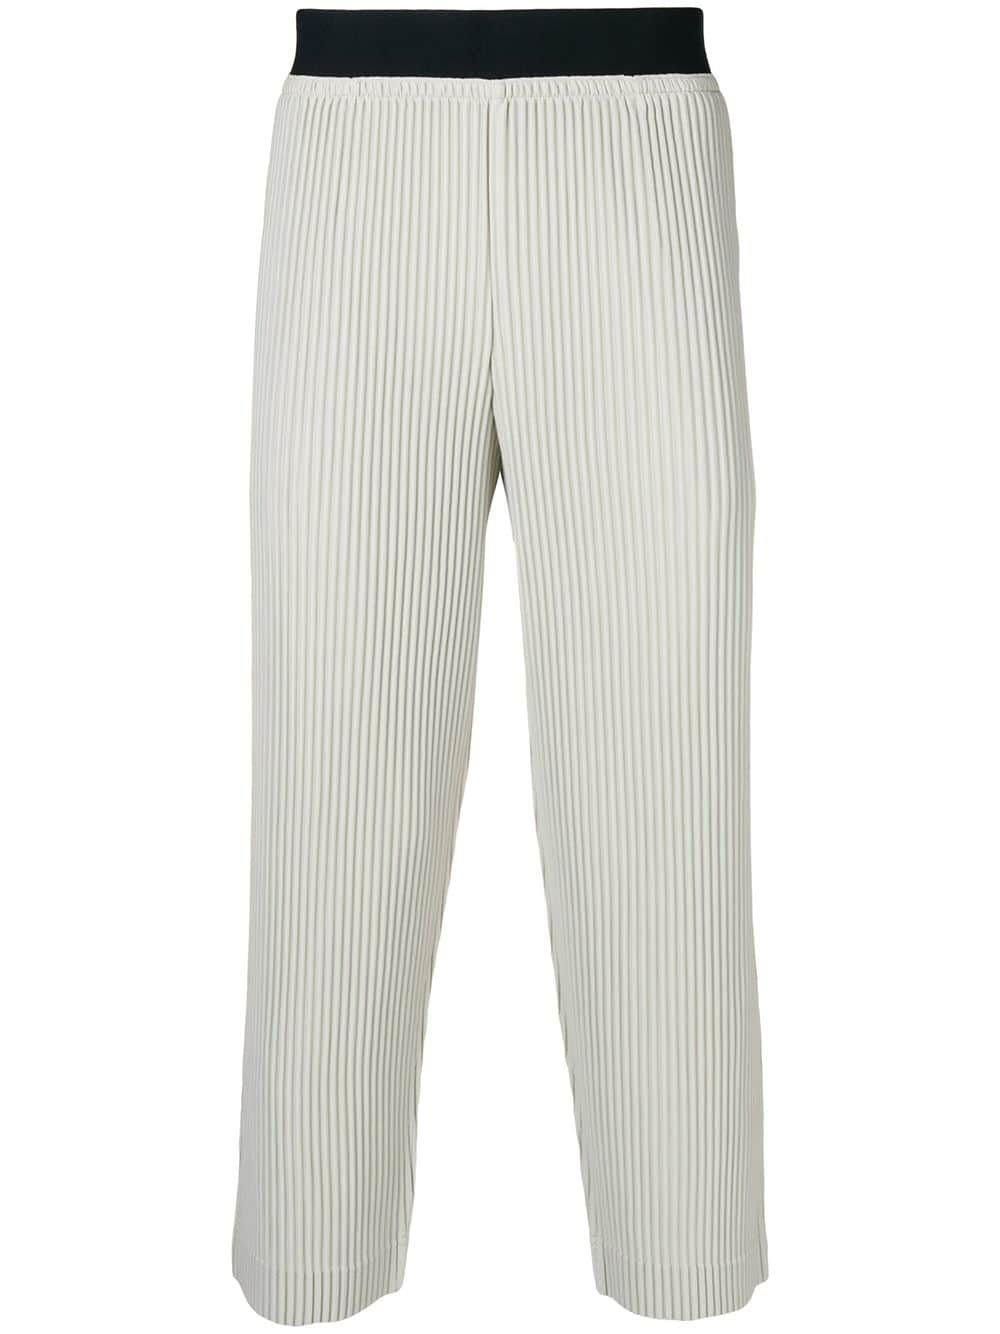 be2d6918e HOMME PLISSE ISSEY MIYAKE HOMME PLISSÉ ISSEY MIYAKE PLEATED TRACK PANTS -  NEUTRALS. #hommeplisseisseymiyake #cloth